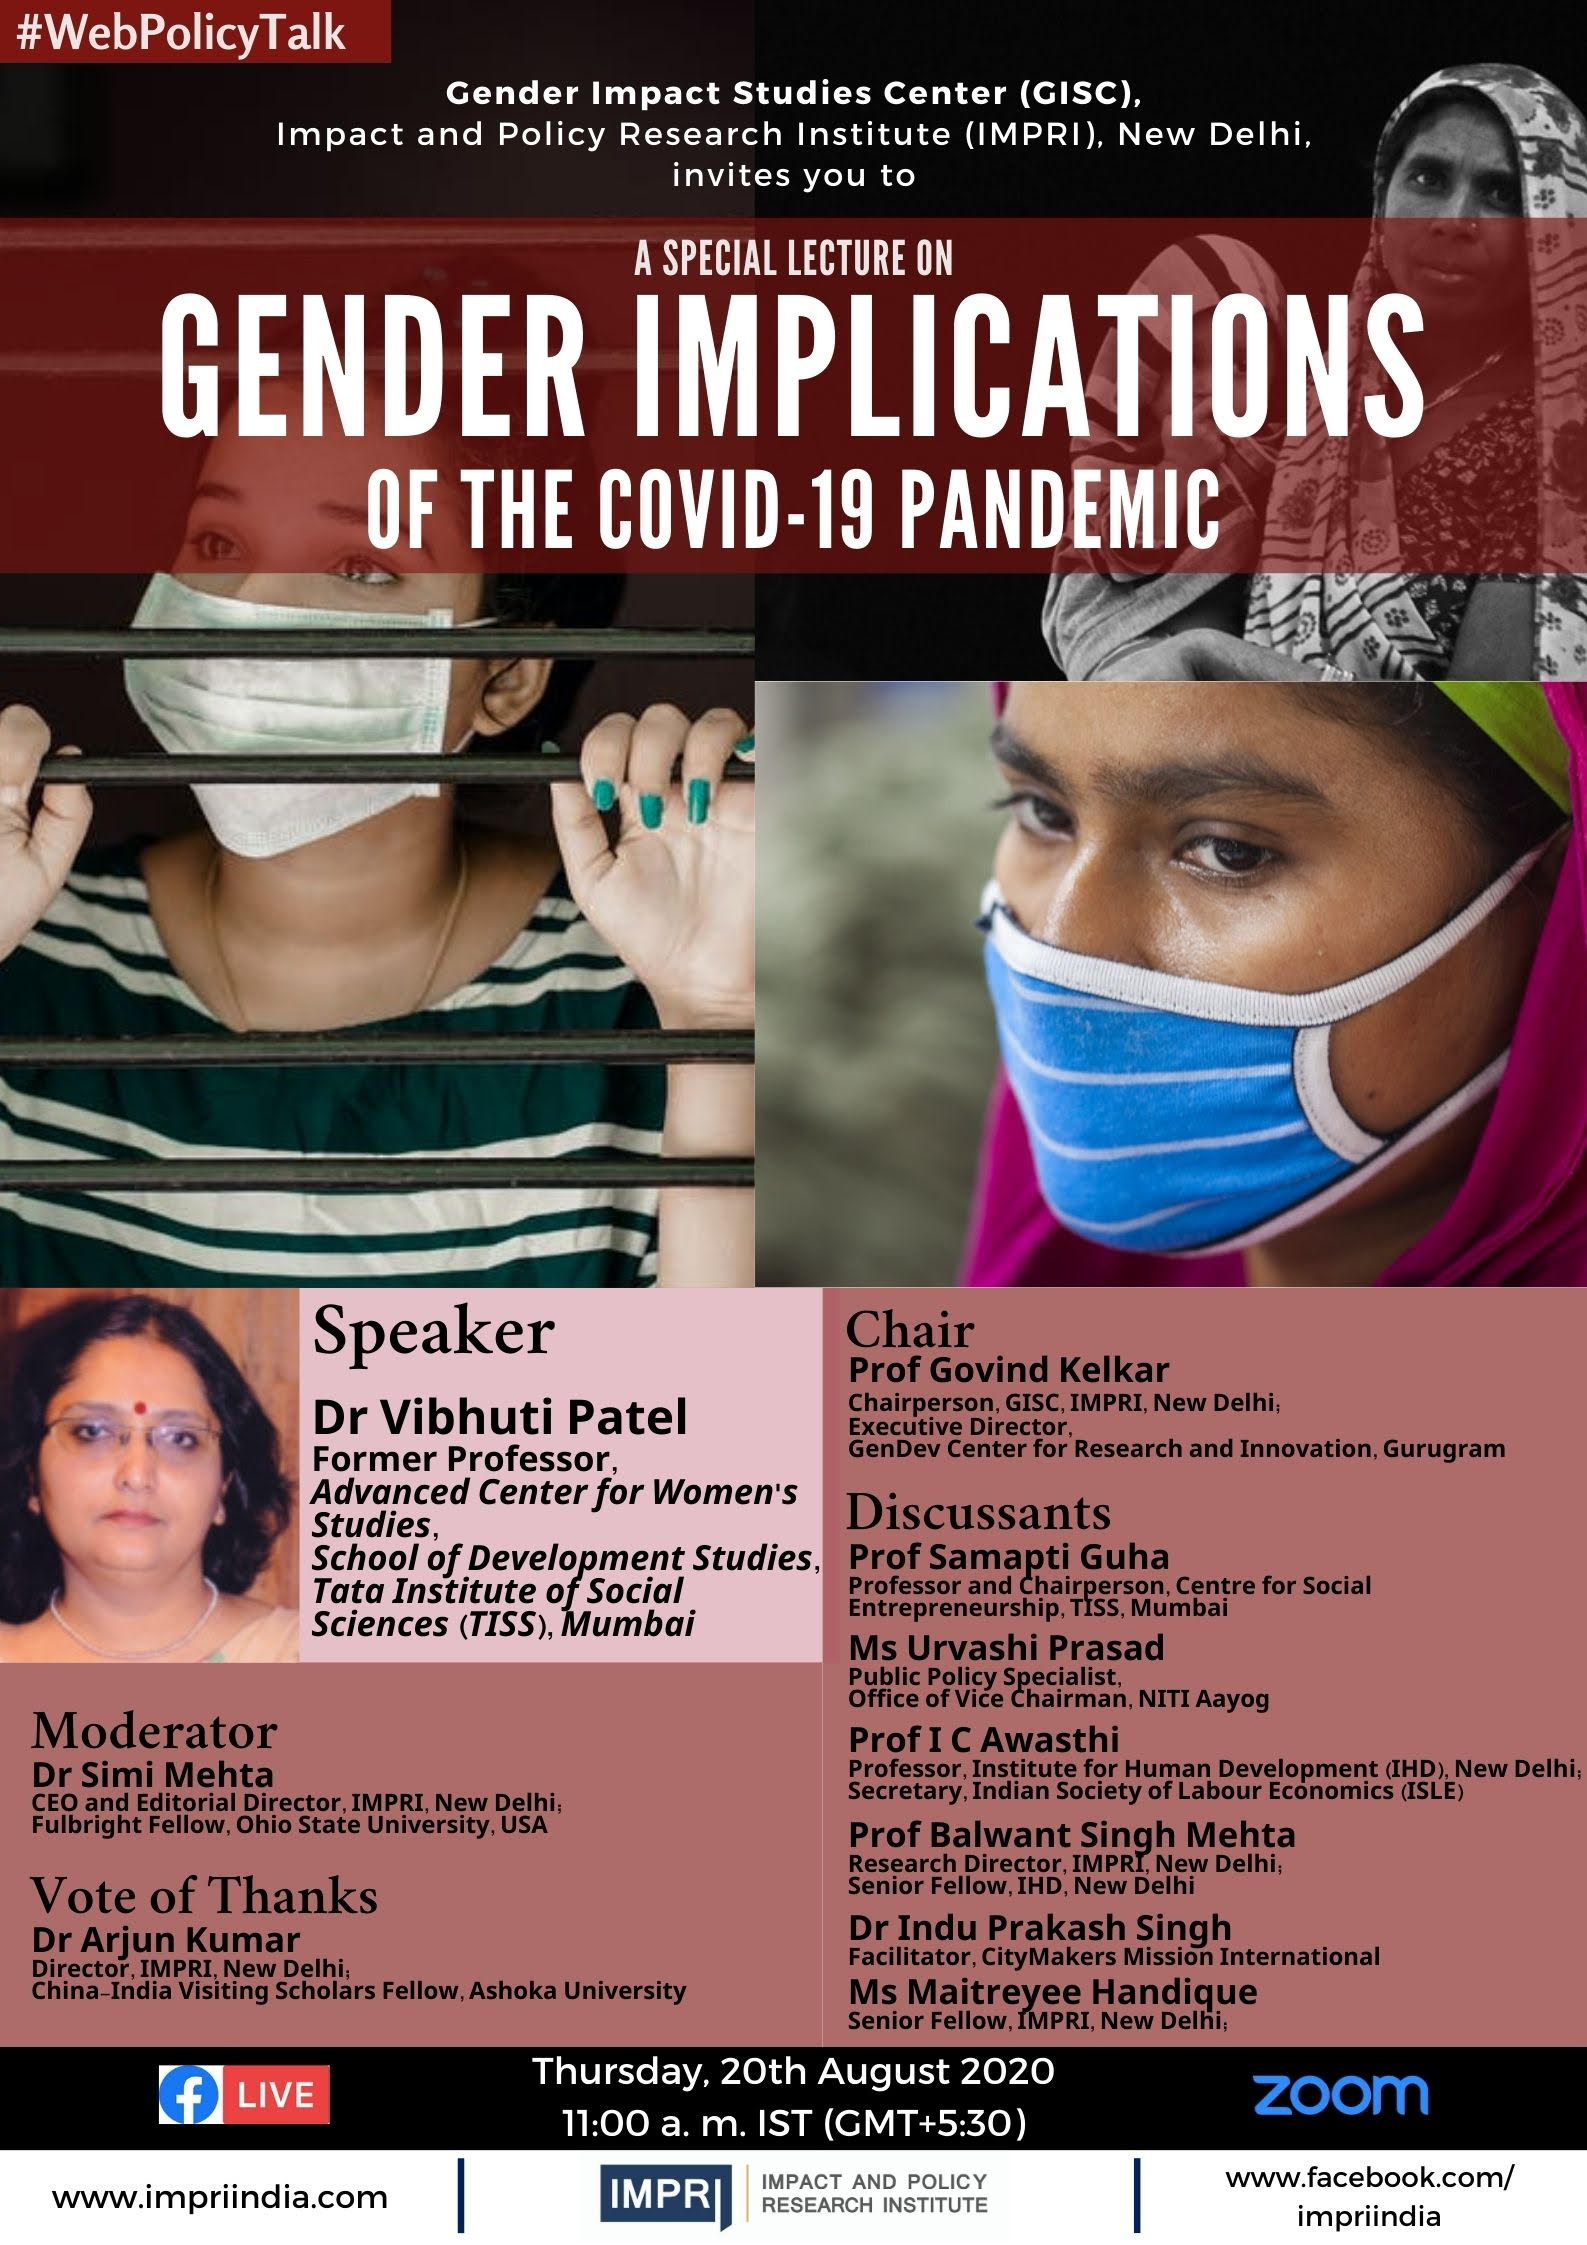 Panelists for Gender Implications of COVID 19